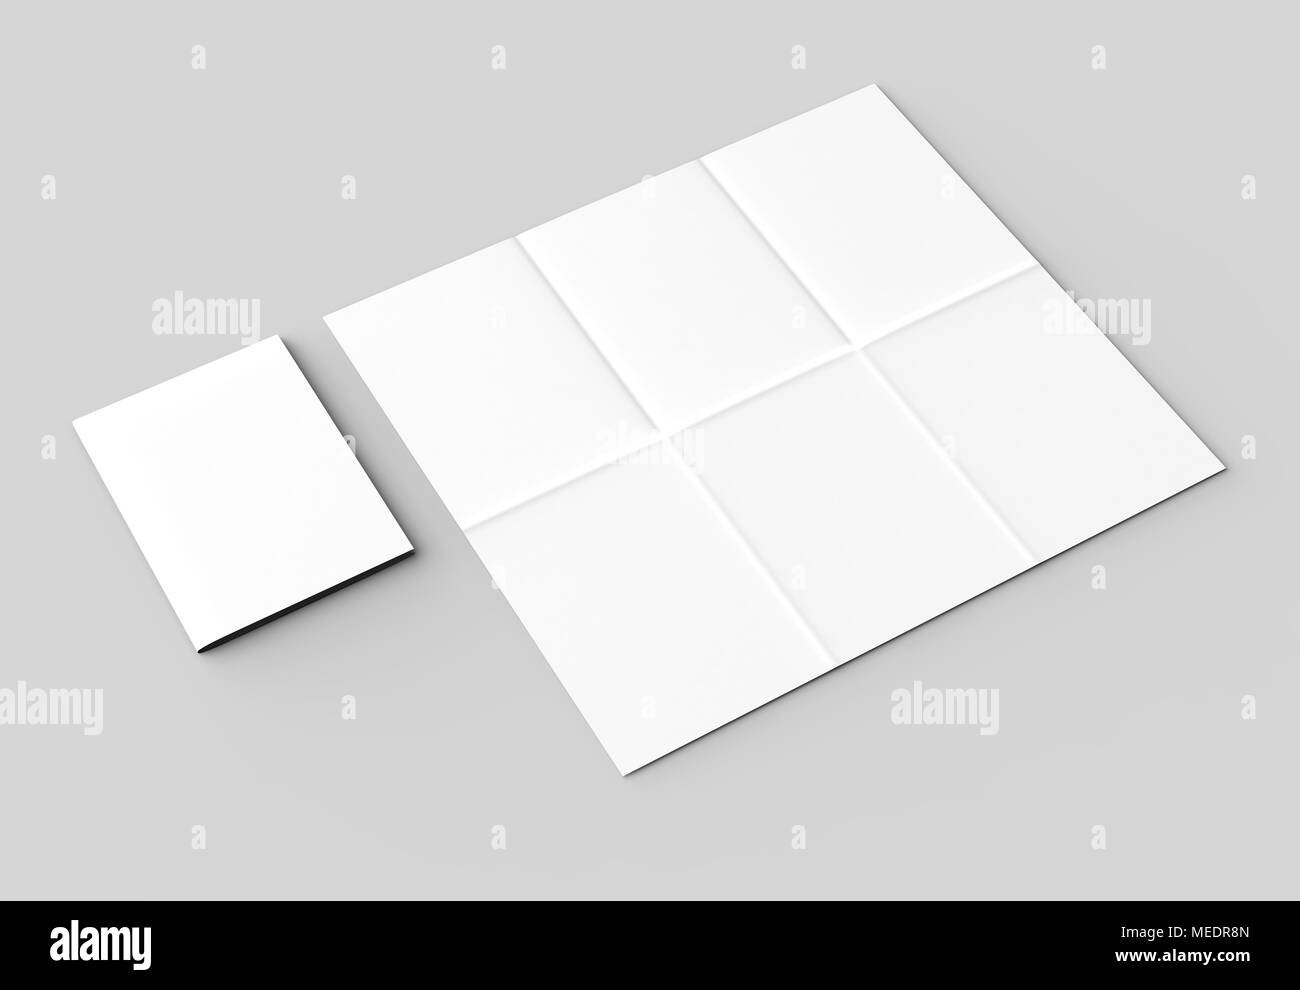 12 page leaflet french fold vertical brochure mock up isolated on